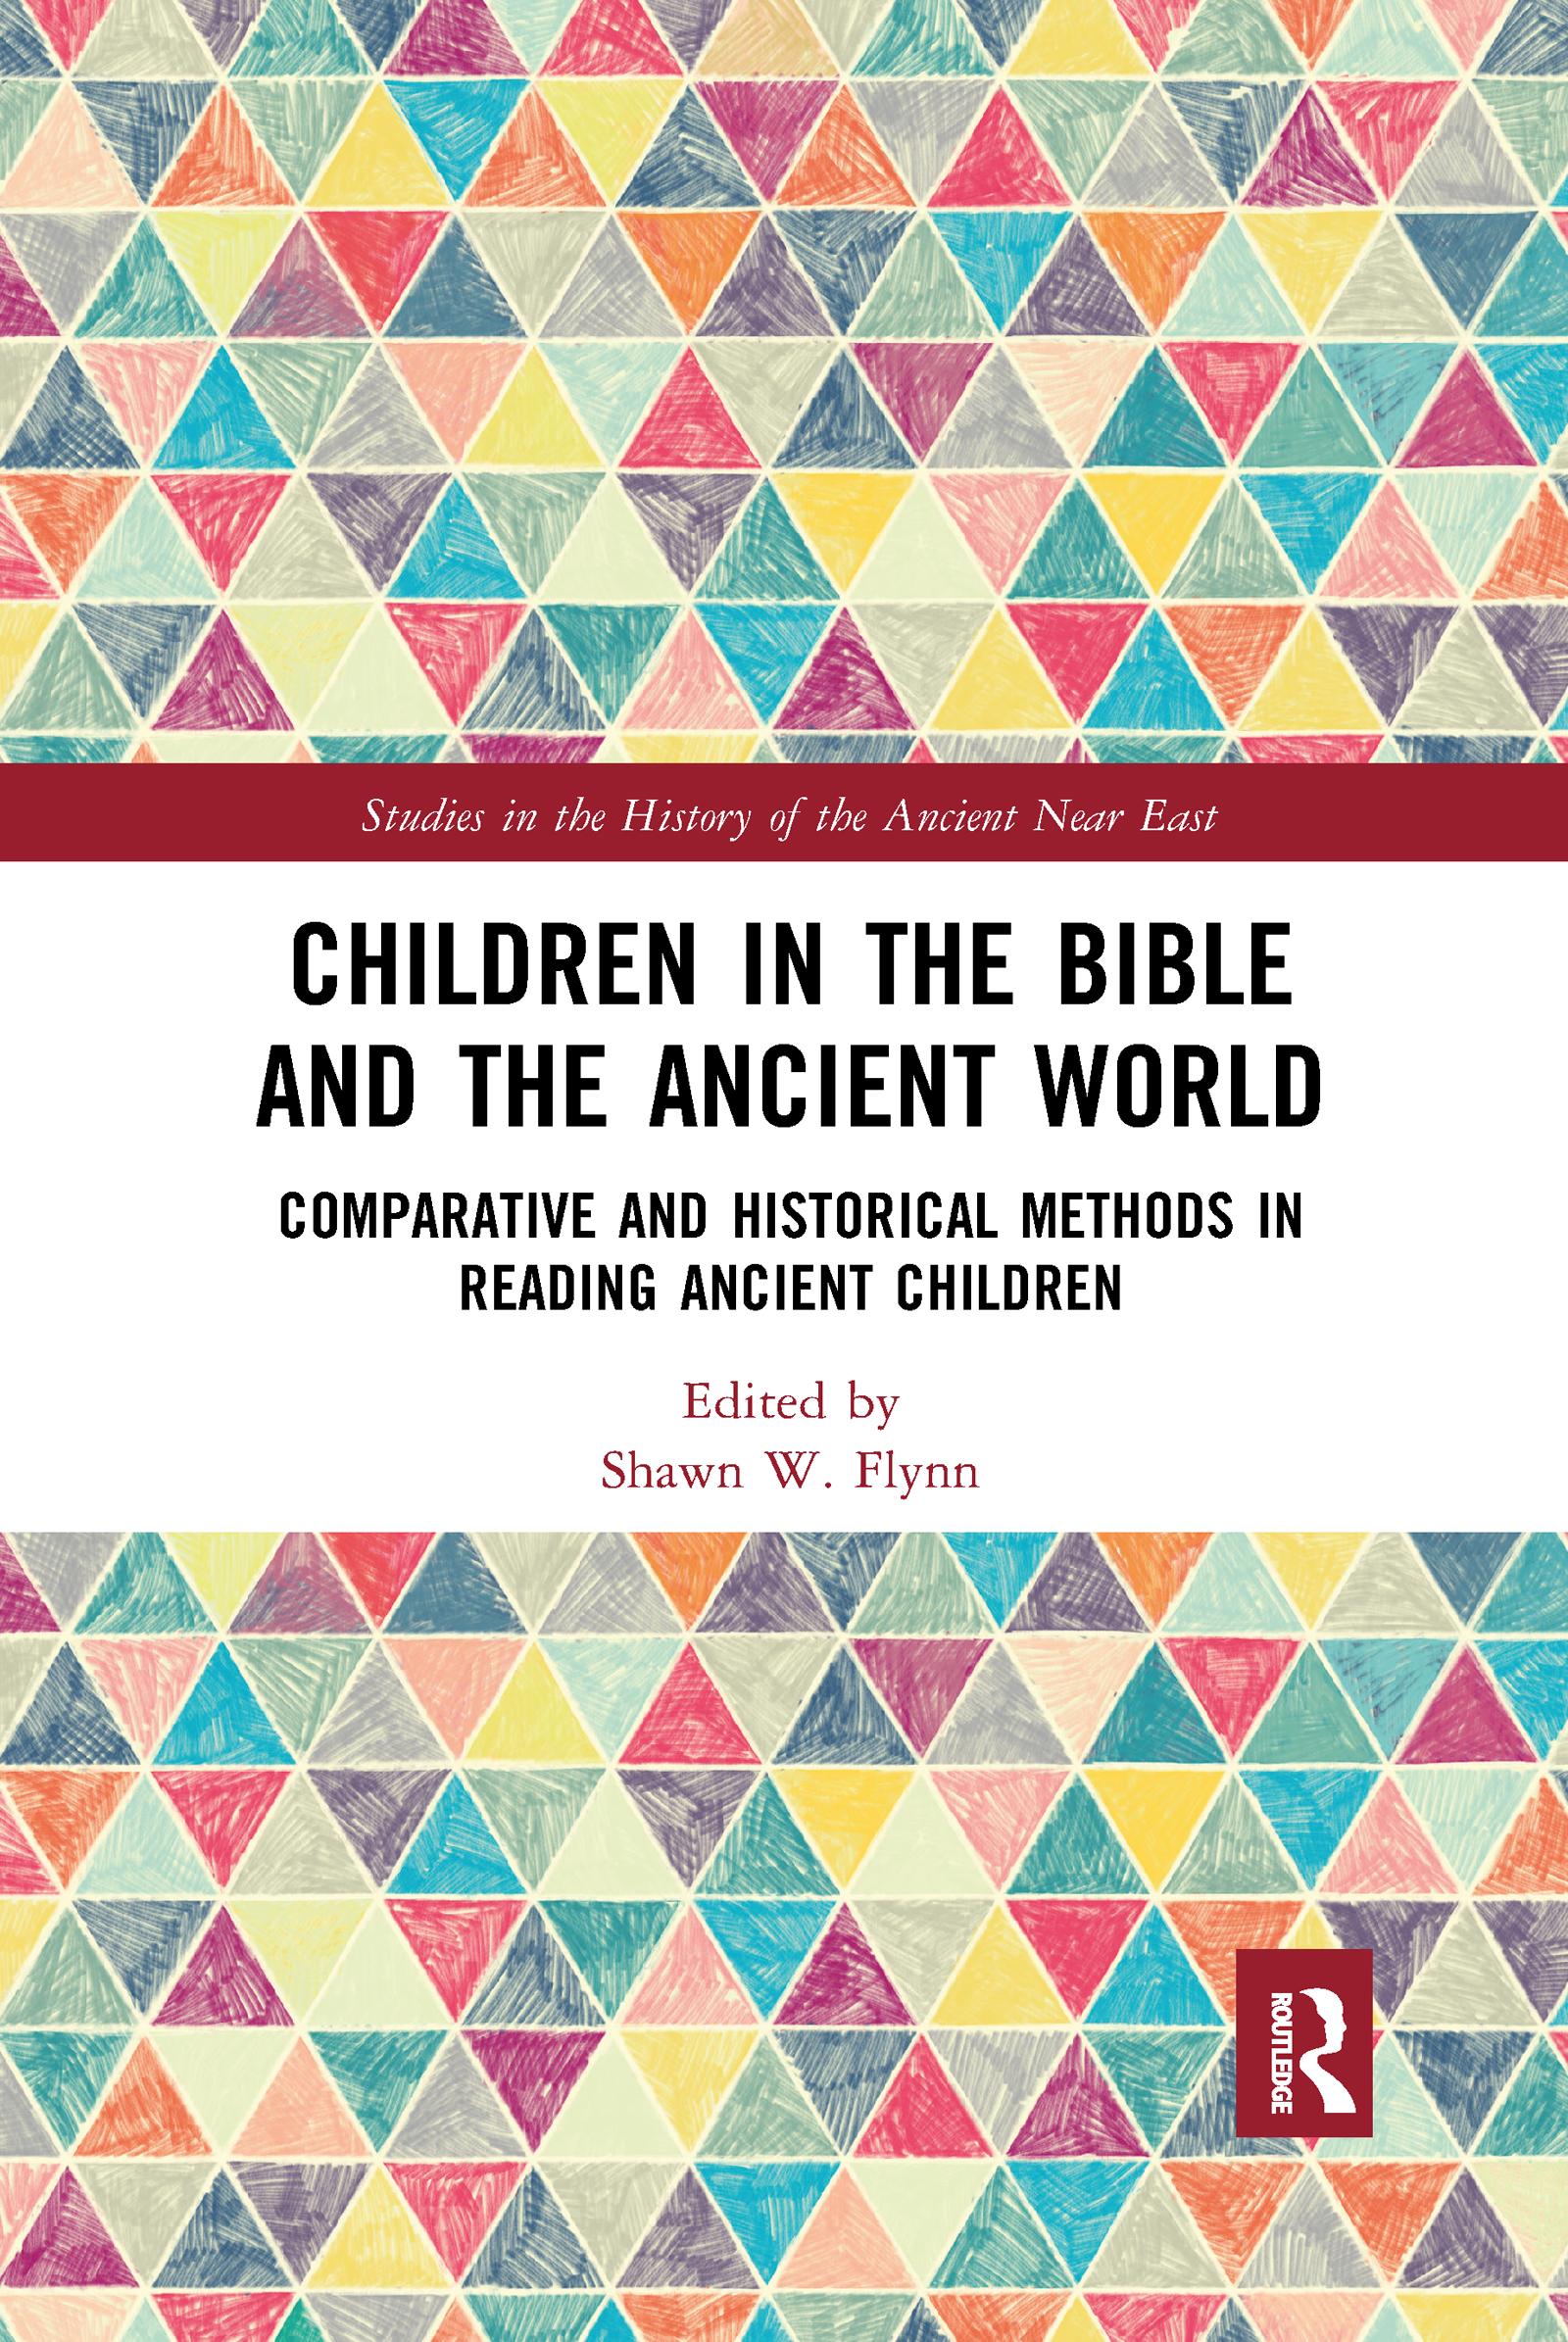 Children in the Bible and the Ancient World